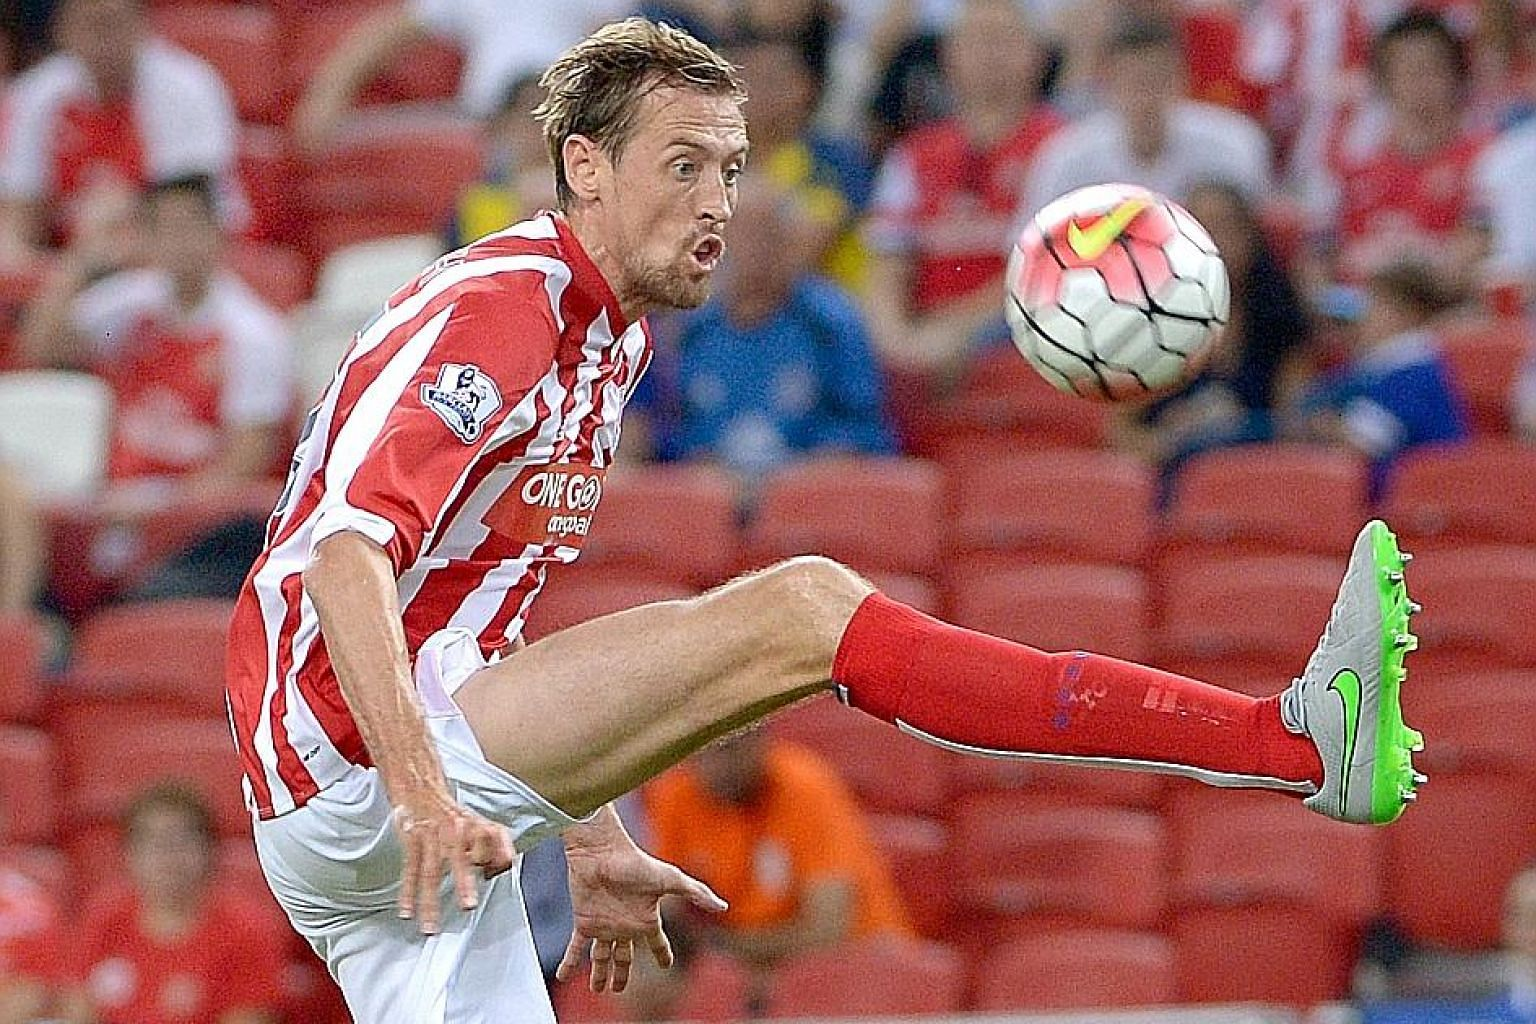 Veteran striker Peter Crouch, 38, was the surprise mover of the day as he signed for Premier League strugglers Burnley until the end of the season. He is part of a swop deal with Championship side Stoke City which sees Burnley forward Sam Vokes movin